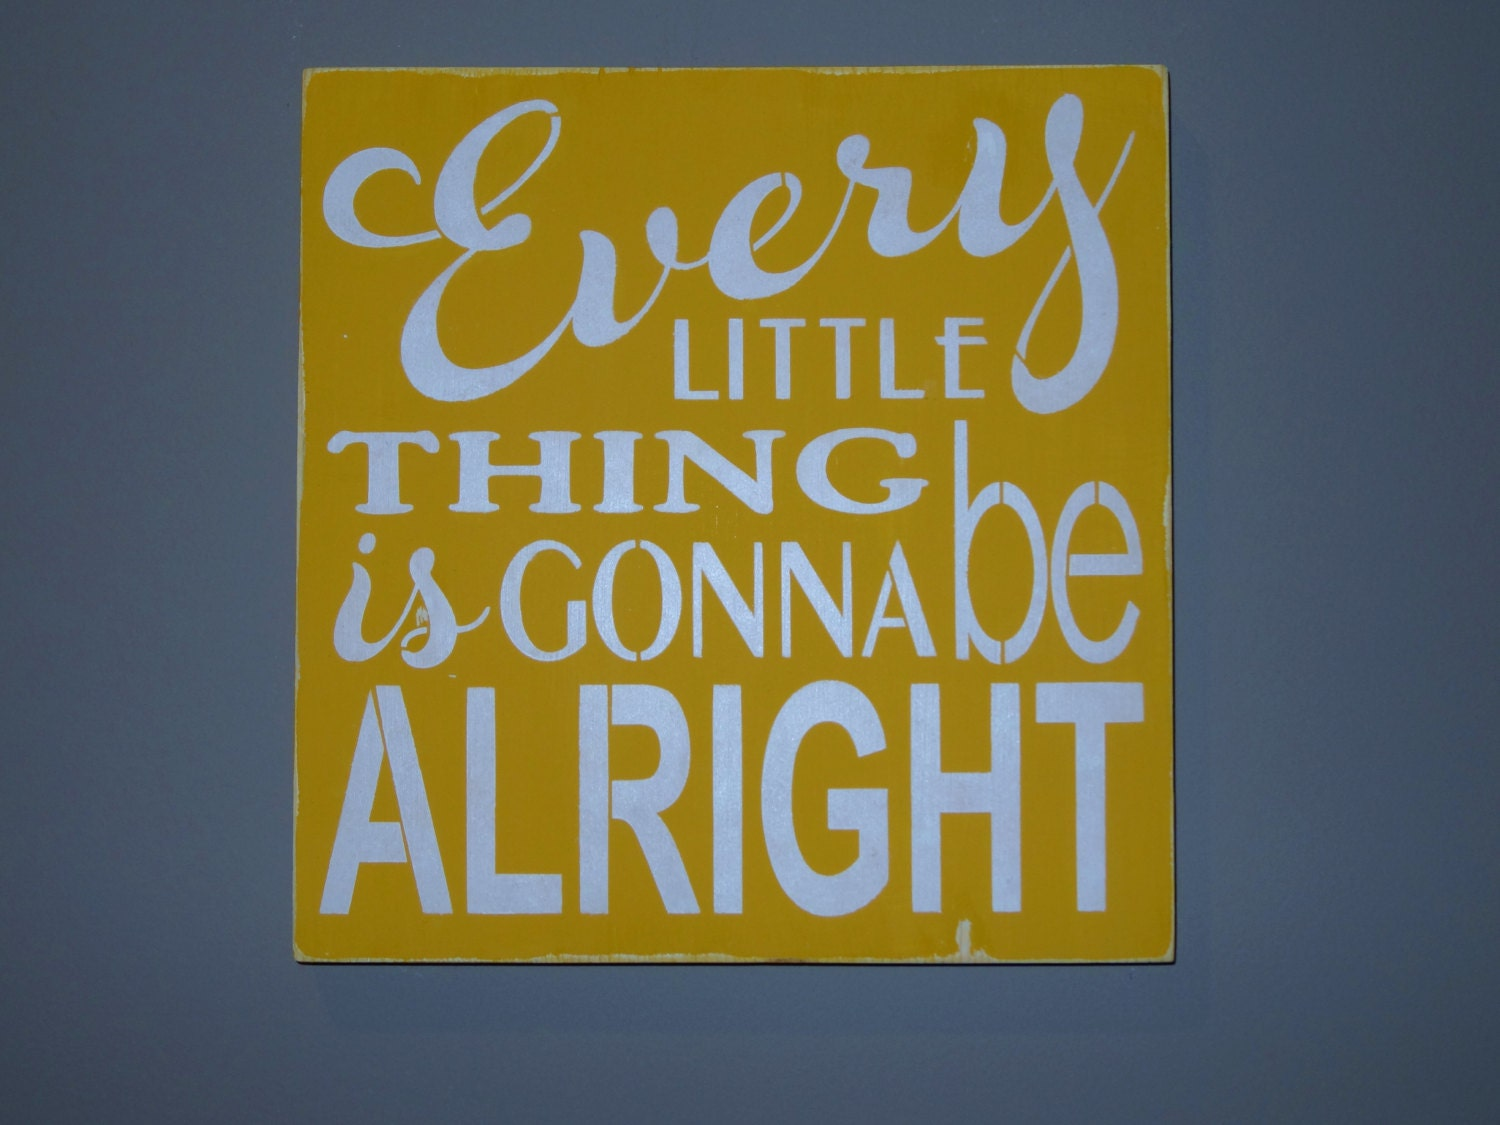 Every Little Thing Is Gonna Be Alright wooden sign decoration